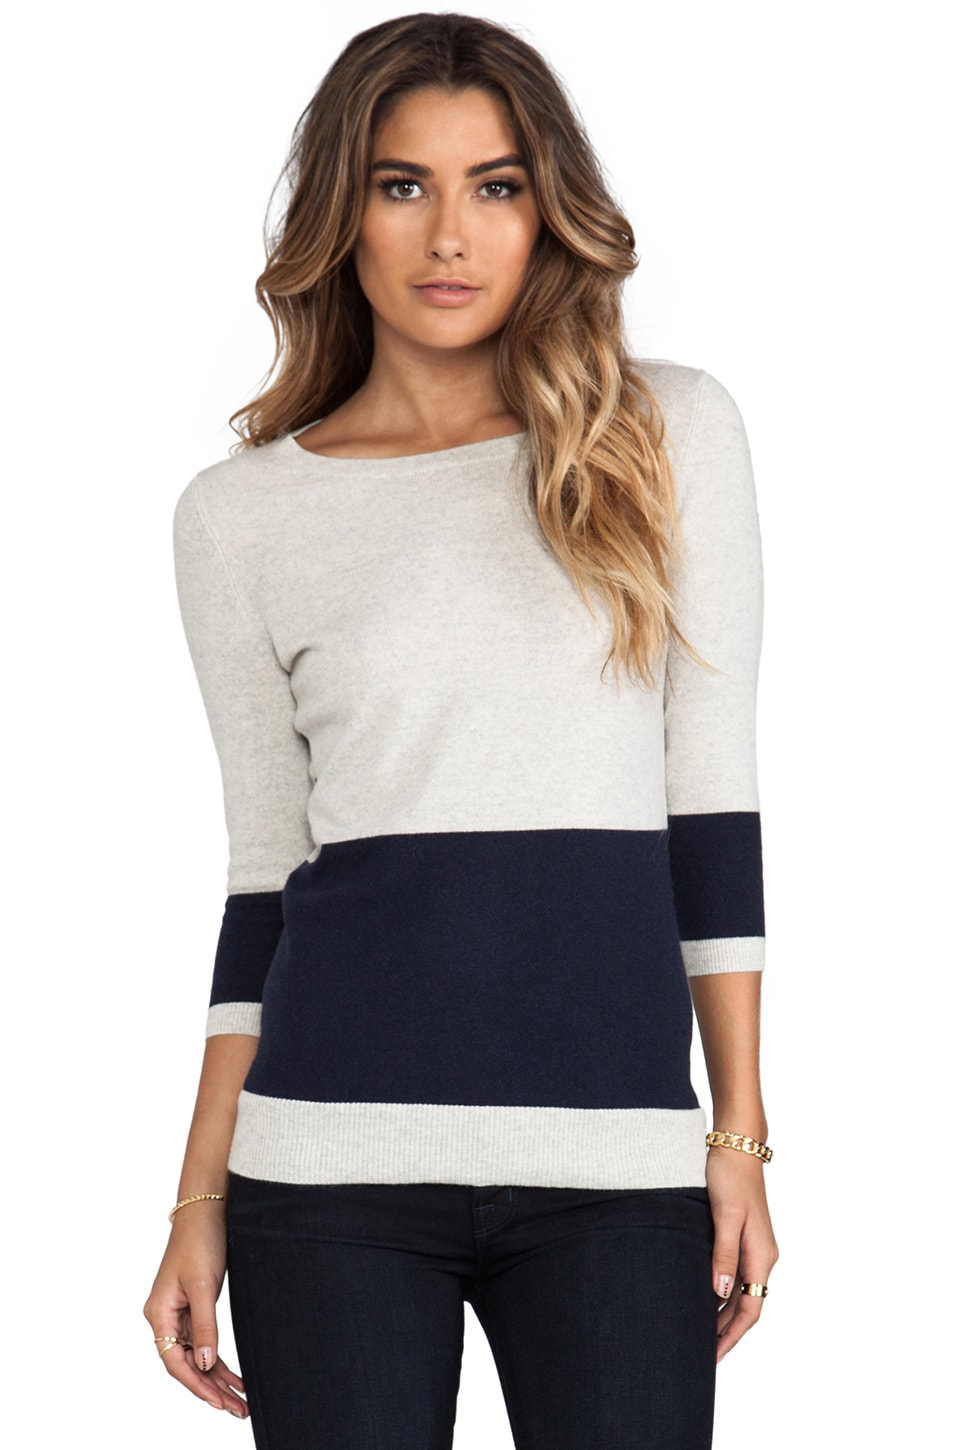 Autumn Cashmere Color Block Striped Back Boat Neck Sweater in Hemp & Navy